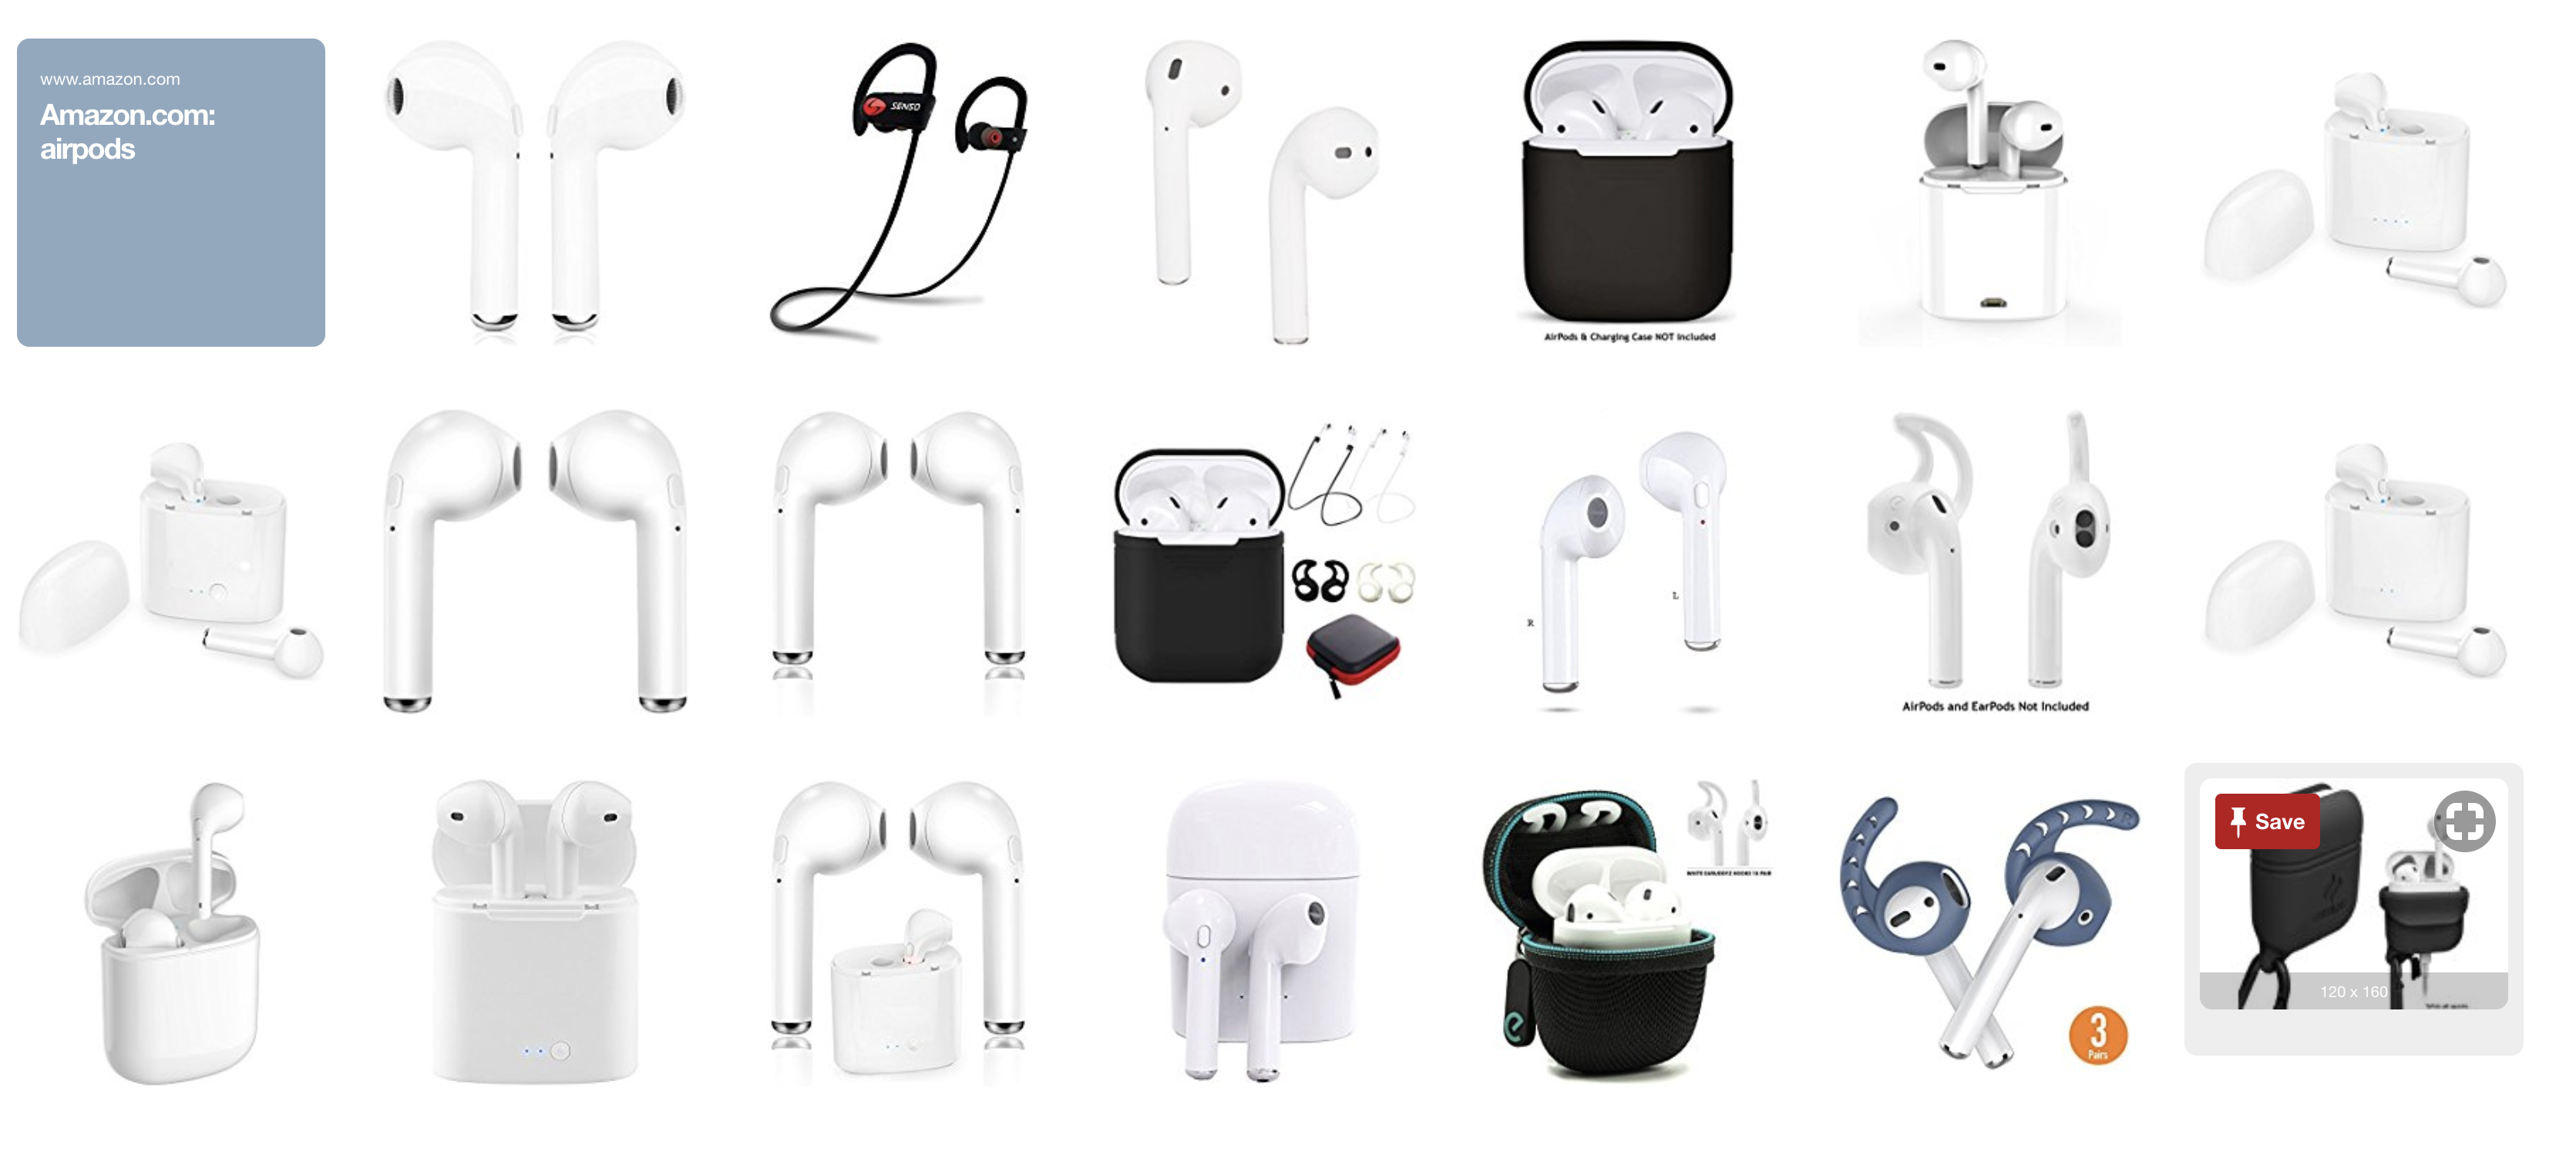 Apple AirPods - cheap knockoffs!•• 2018-02 on Amazon